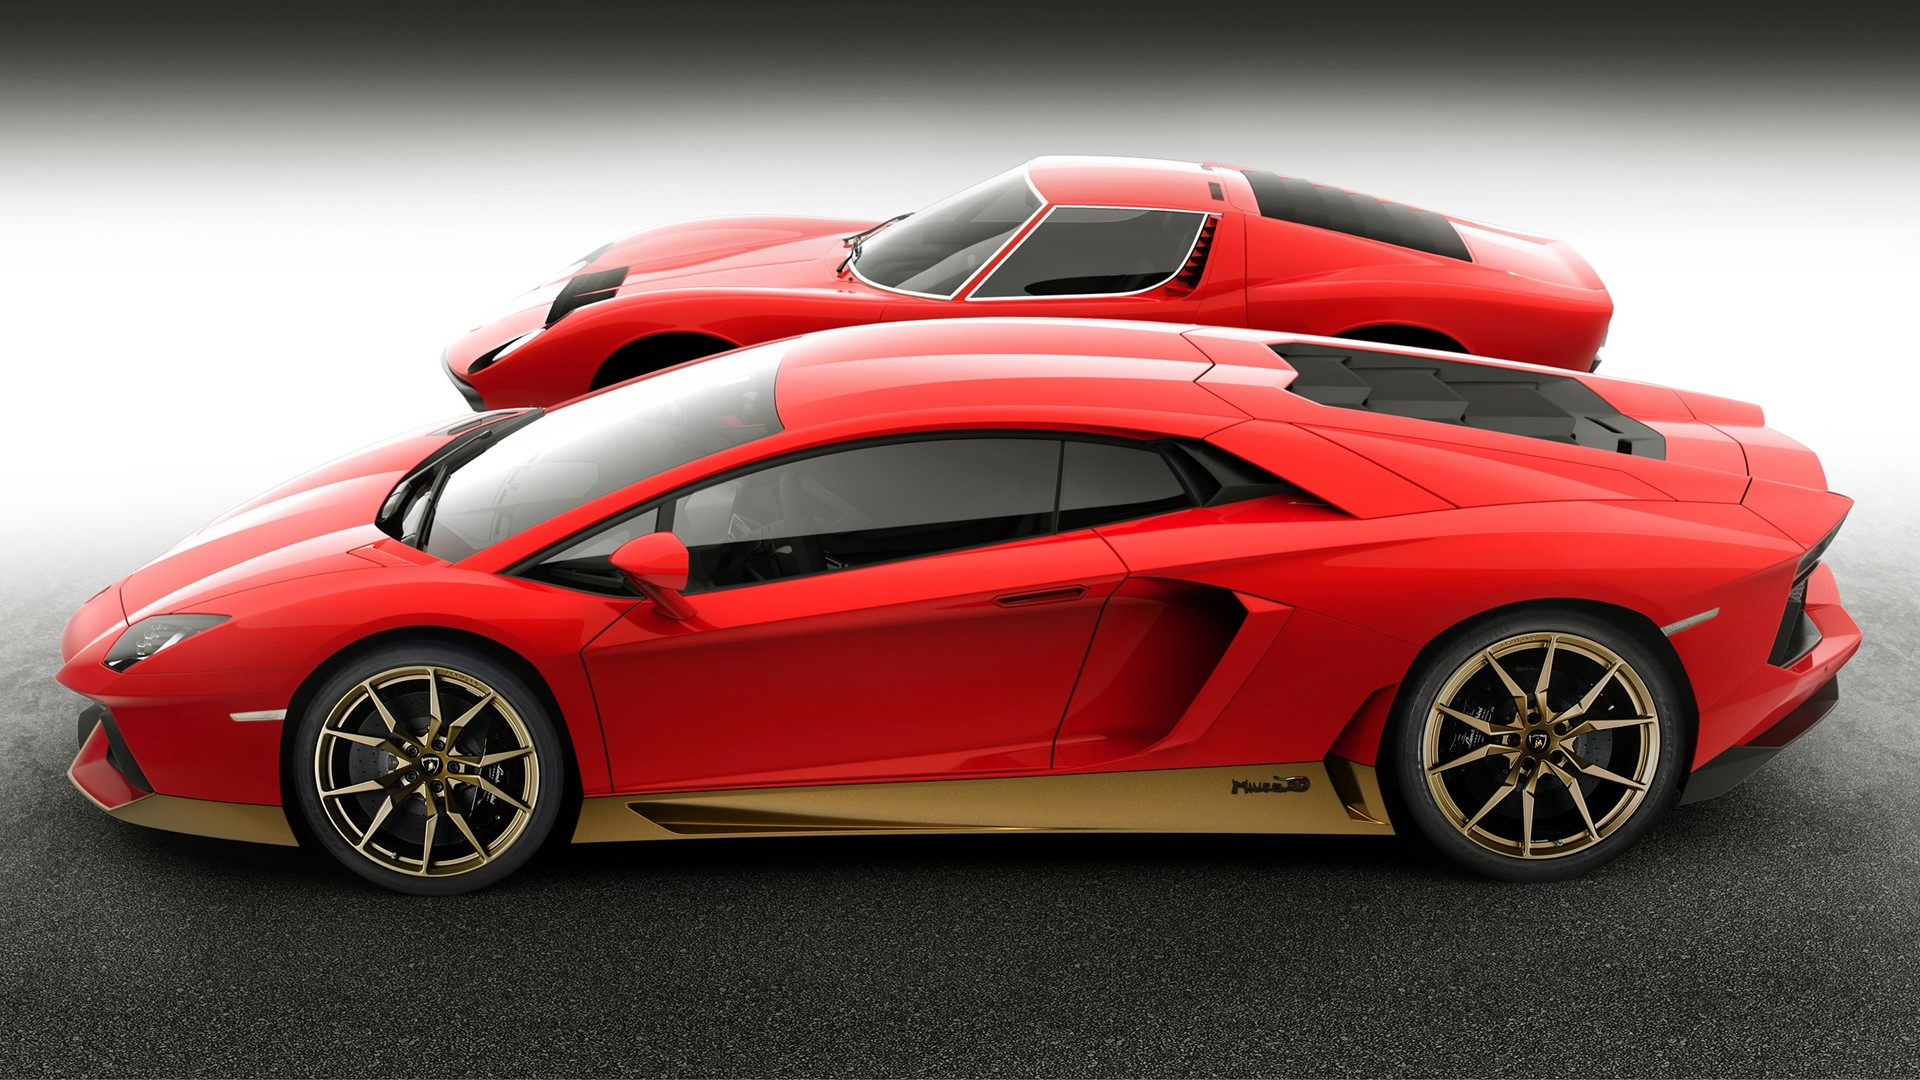 New production record: Automobili Lamborghini celebrates the 10,000th Aventador - Image 2